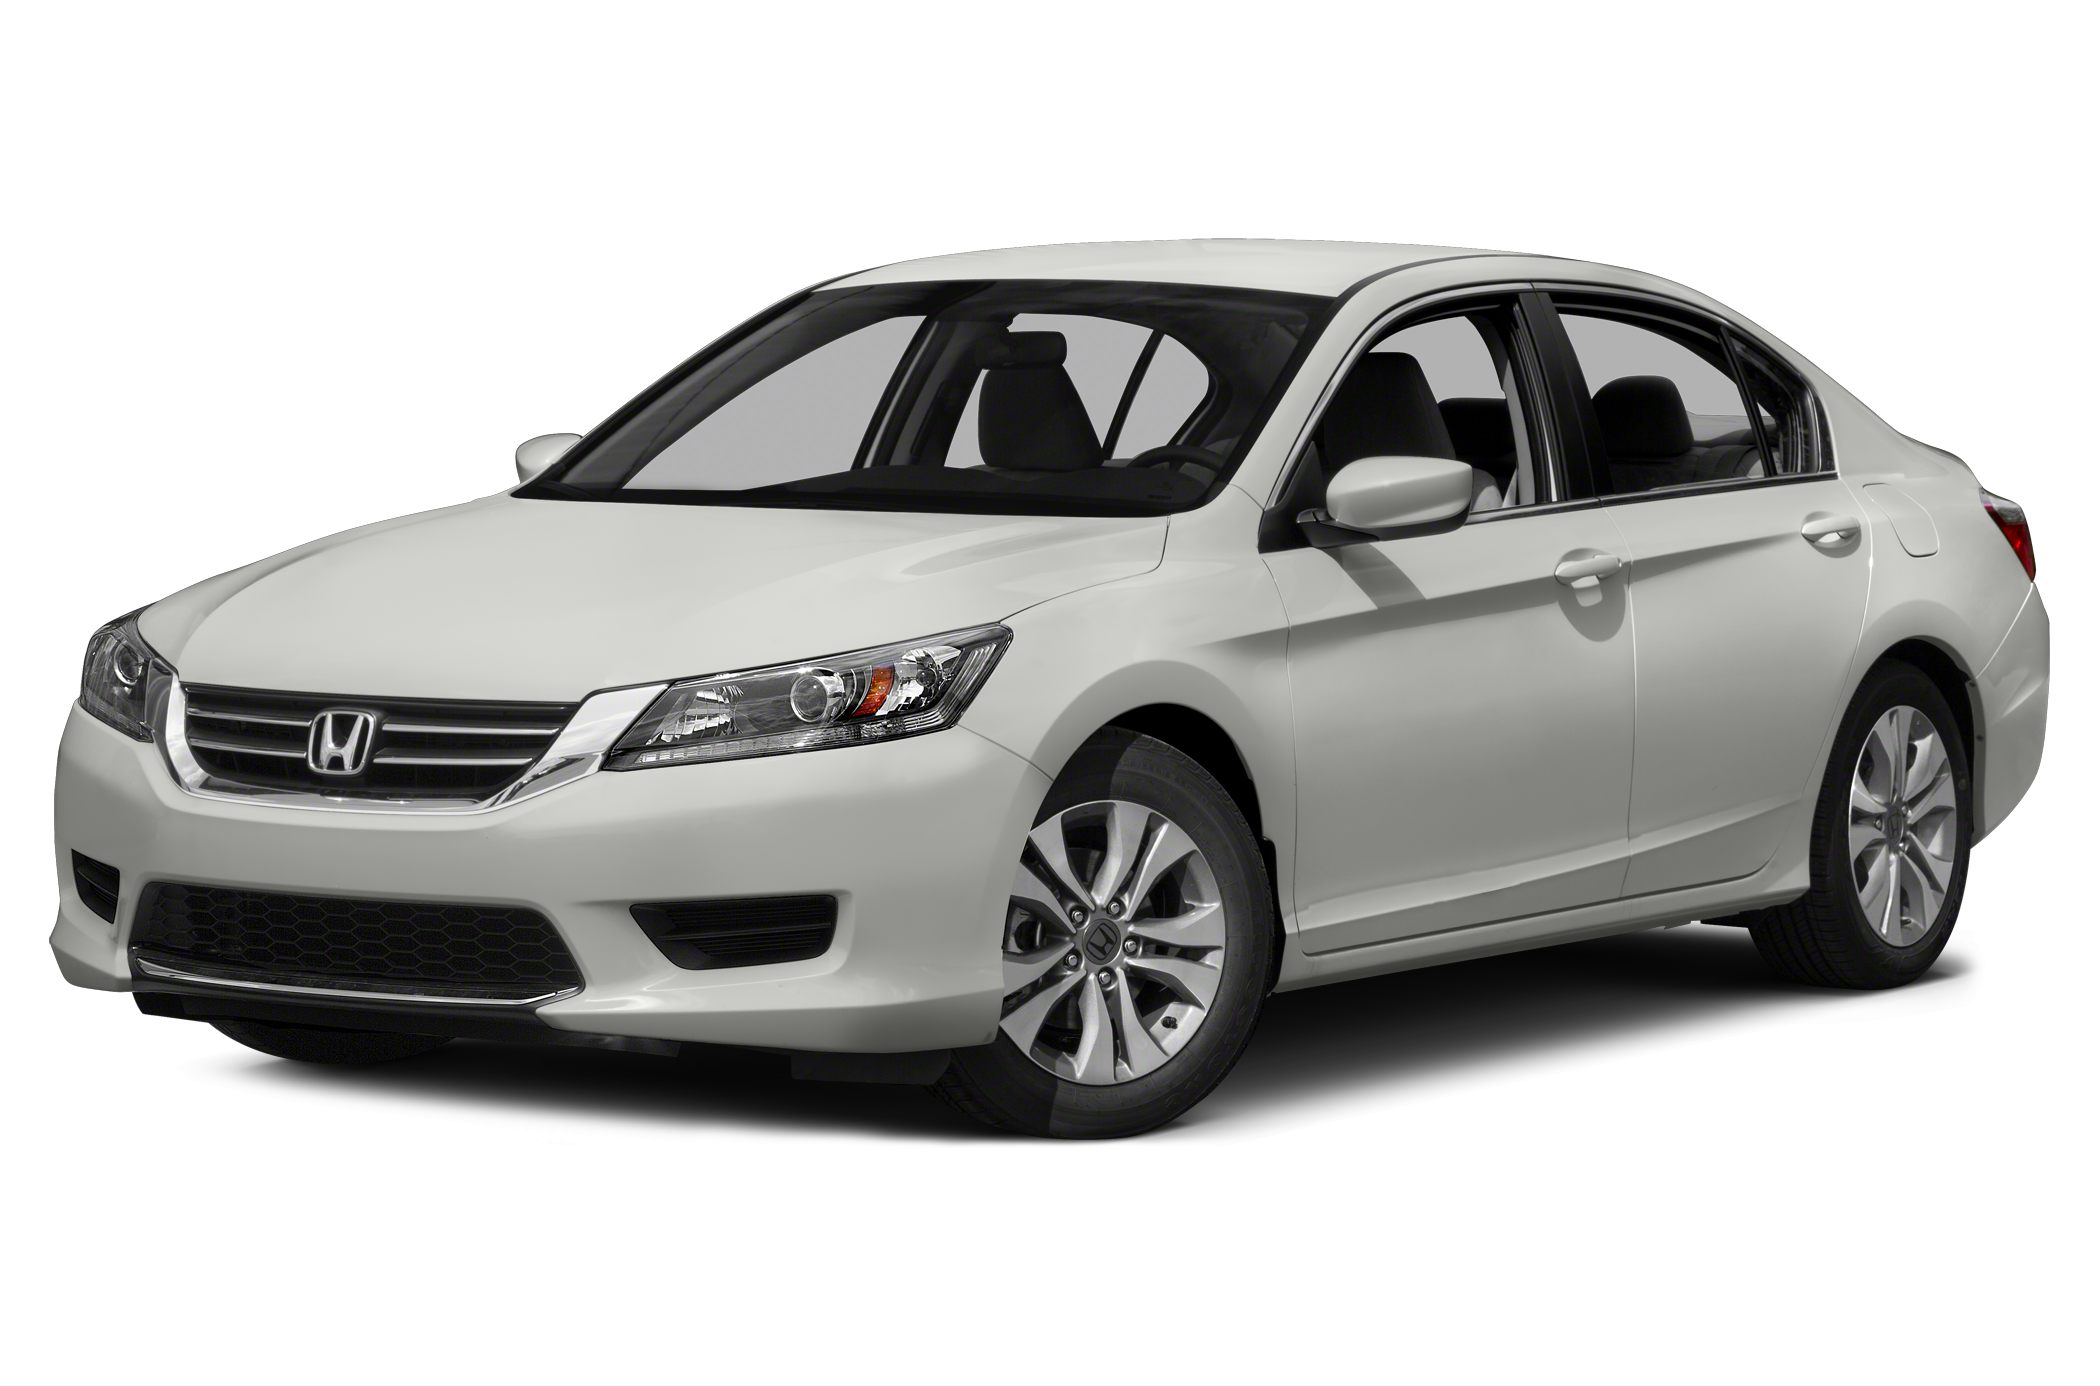 2015 Honda Accord LX Sedan for sale in Stockton for $23,725 with 10 miles.